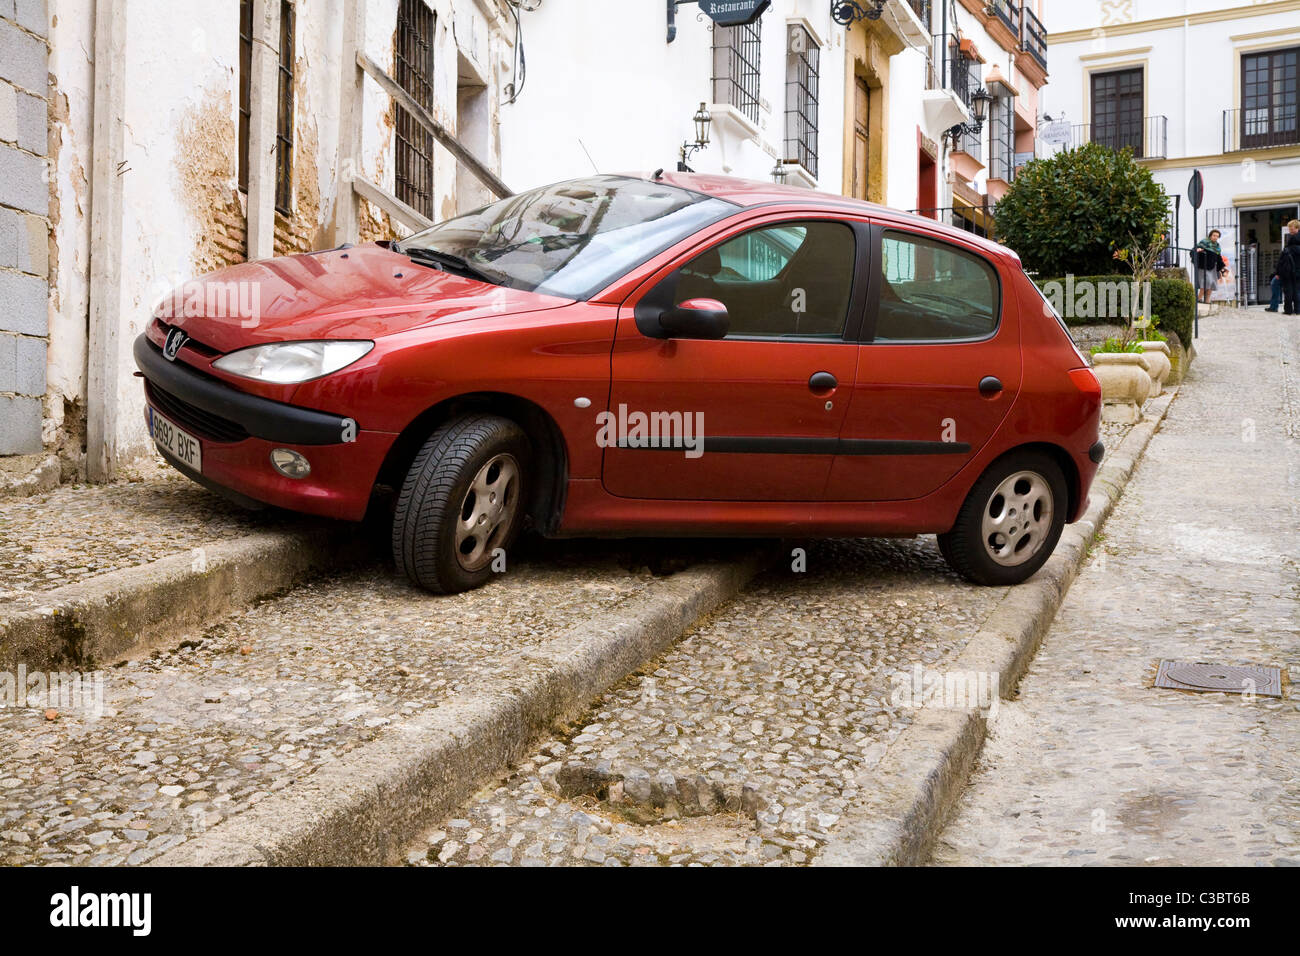 A Peugeot 206 car parked on the pavement in typical traditional ...